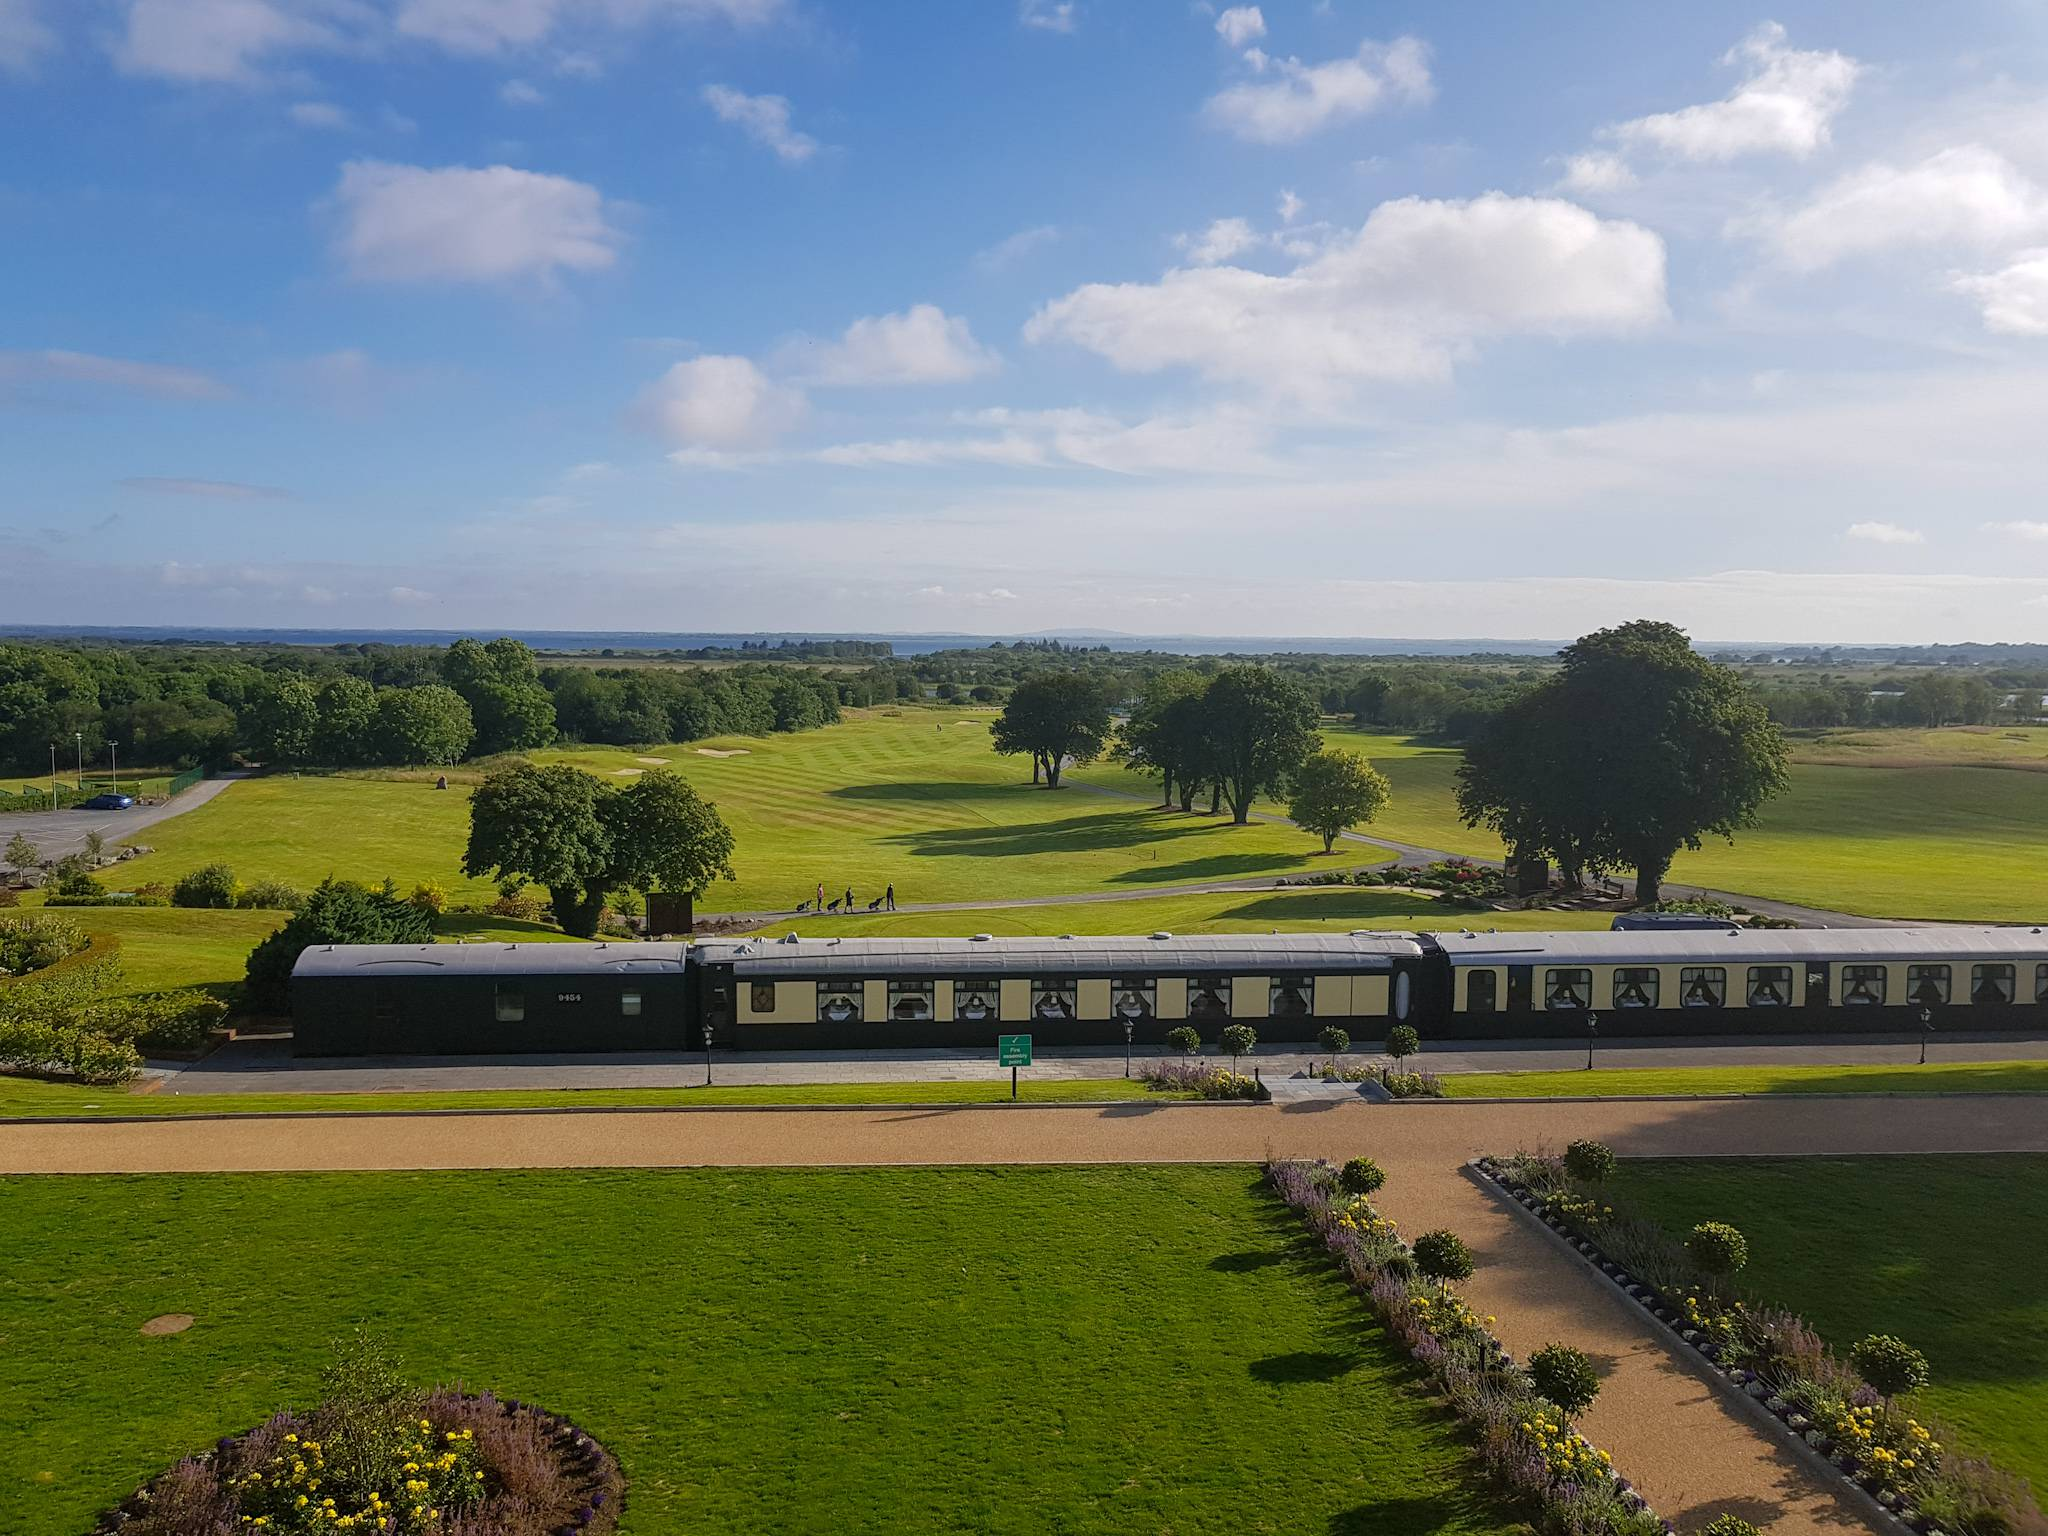 Glenlo Abbey Hotel – The Pullman Restaurant